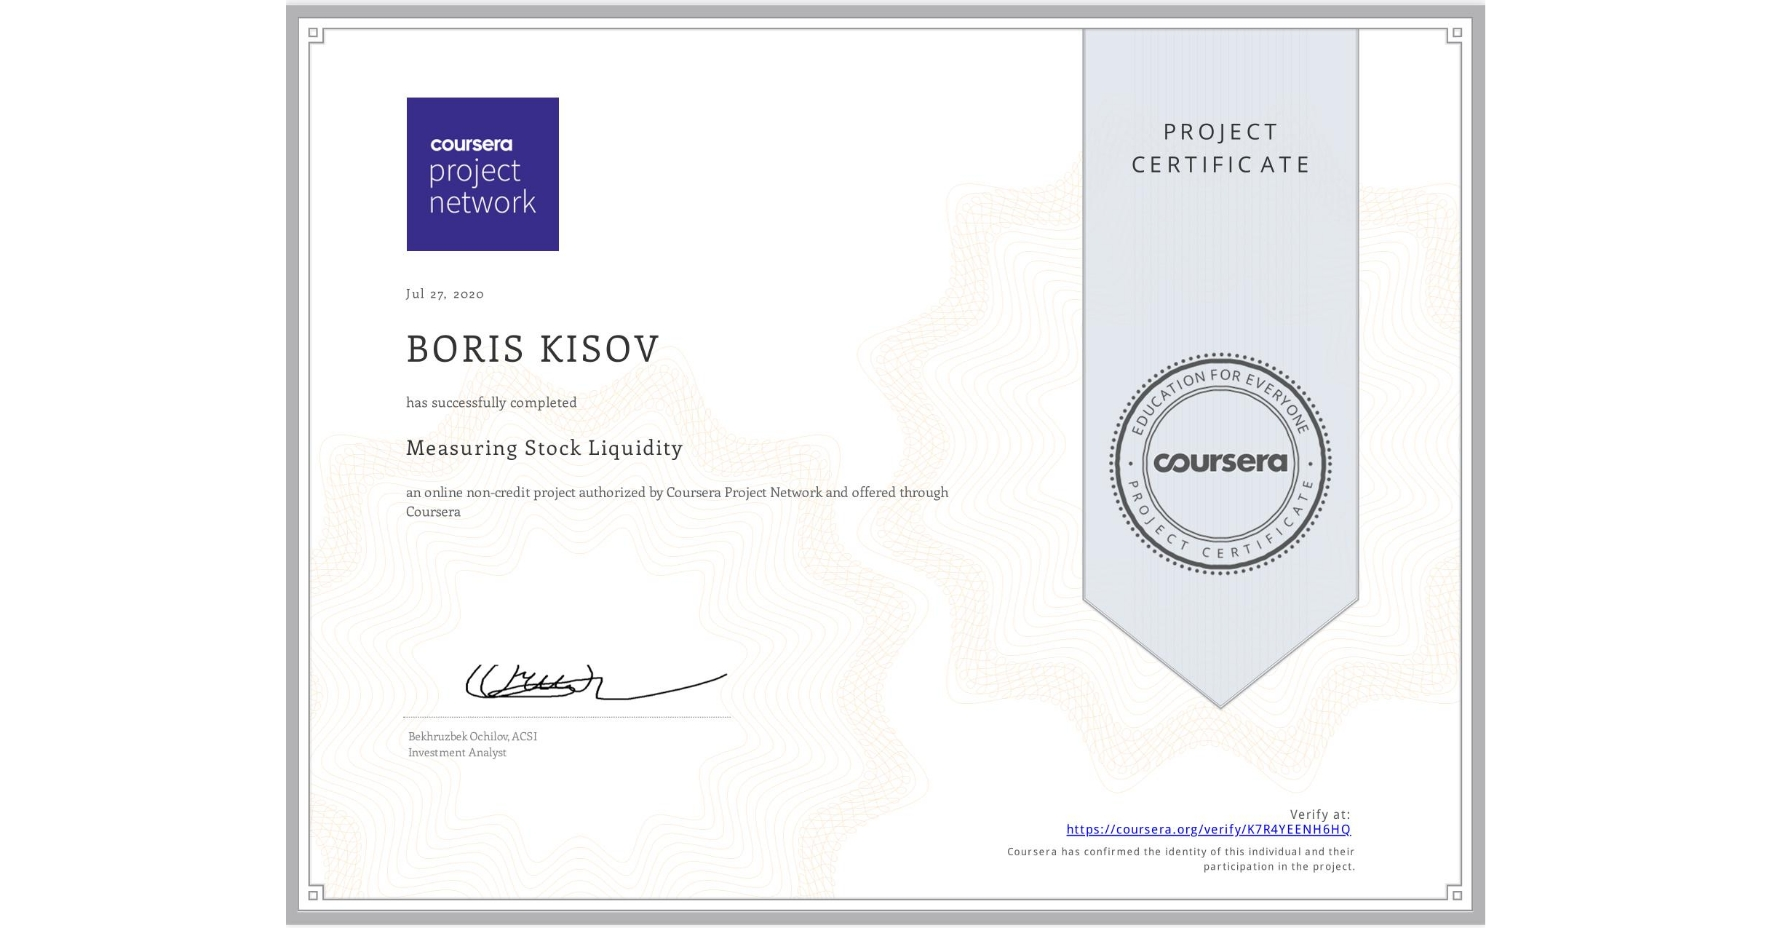 View certificate for BORIS KISOV, Measuring Stock Liquidity, an online non-credit course authorized by Coursera Project Network and offered through Coursera